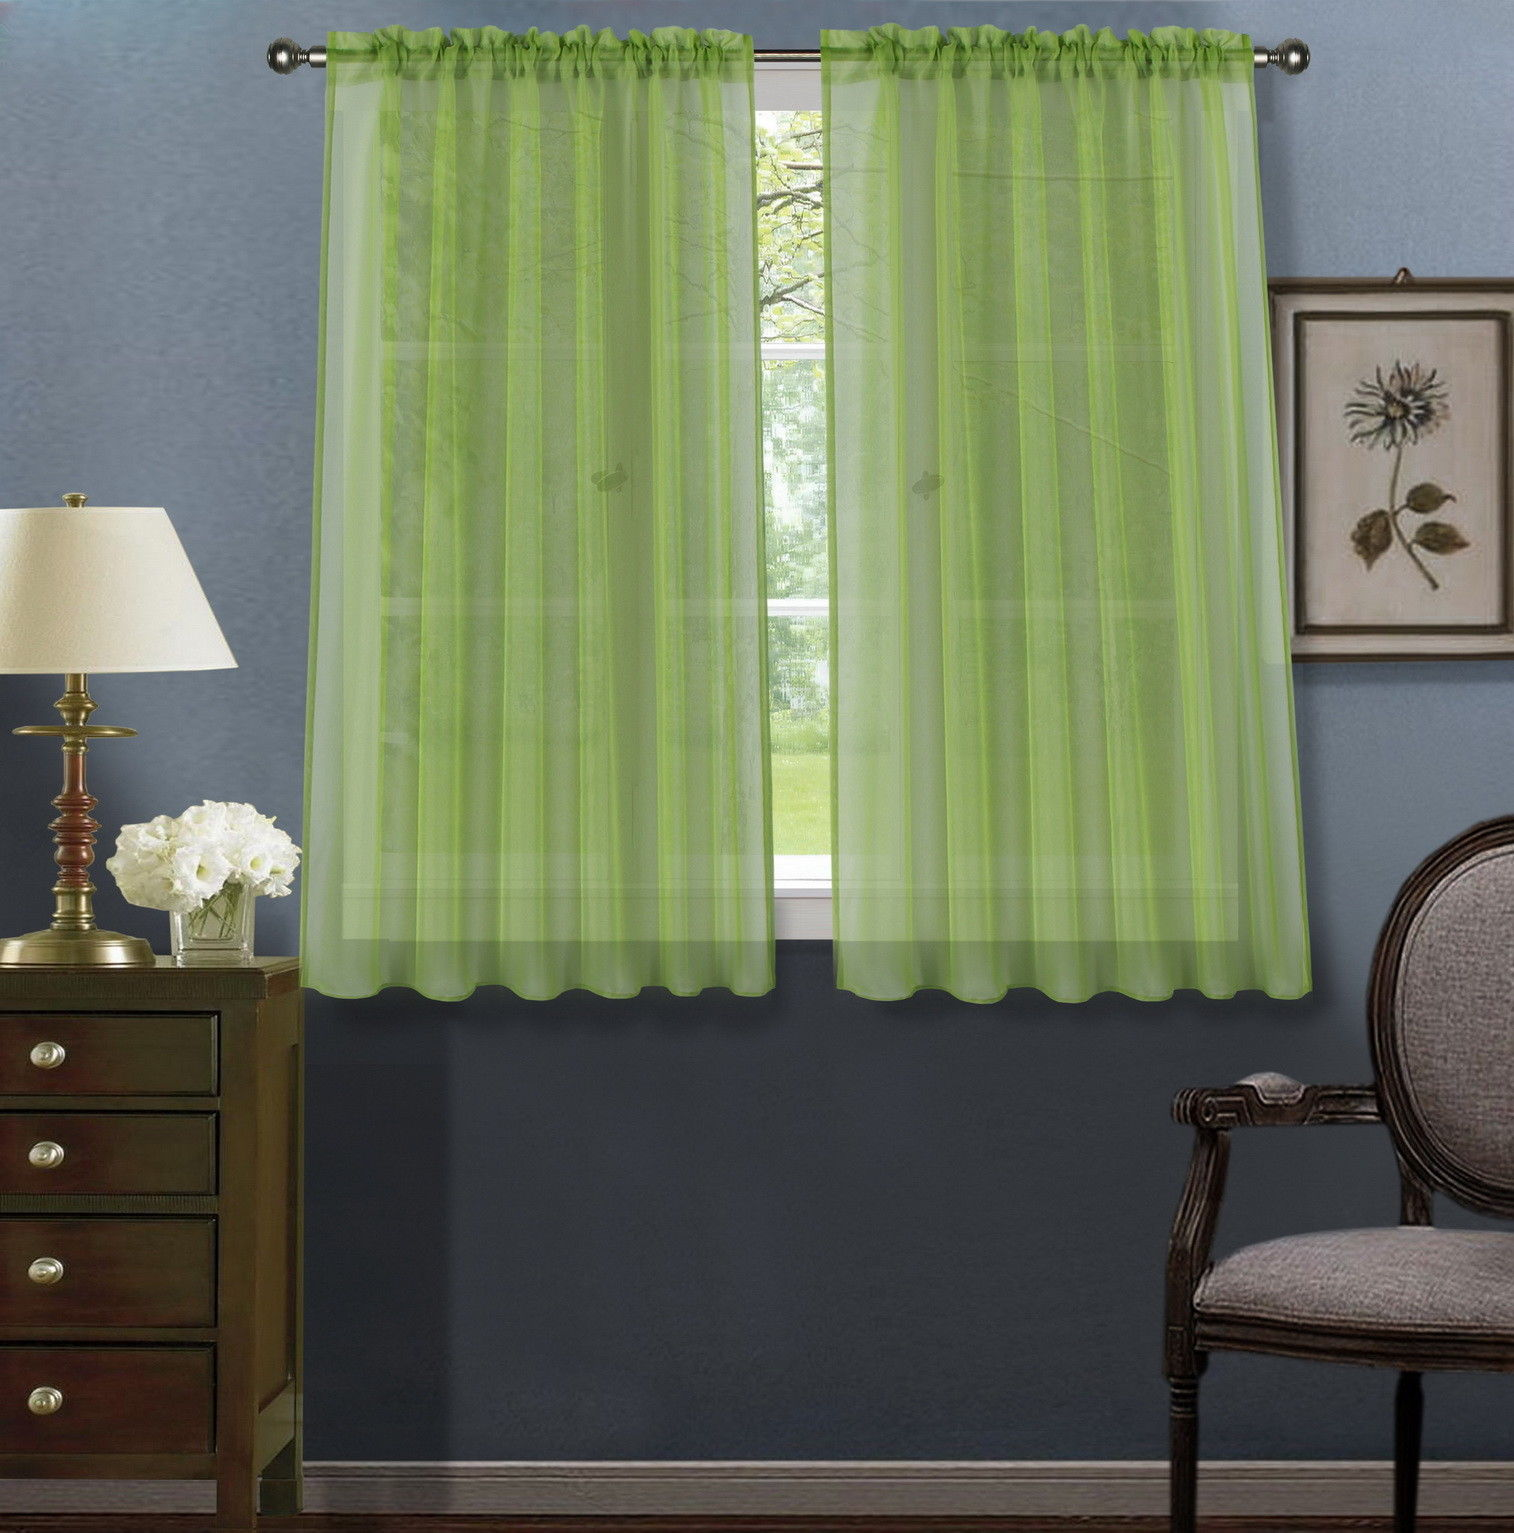 """2pc Lime Green Solid Sheer Voile Window Curtain Set, Two (2) Rod Pocket Panels 55""""W x 45""""L (Each)"""